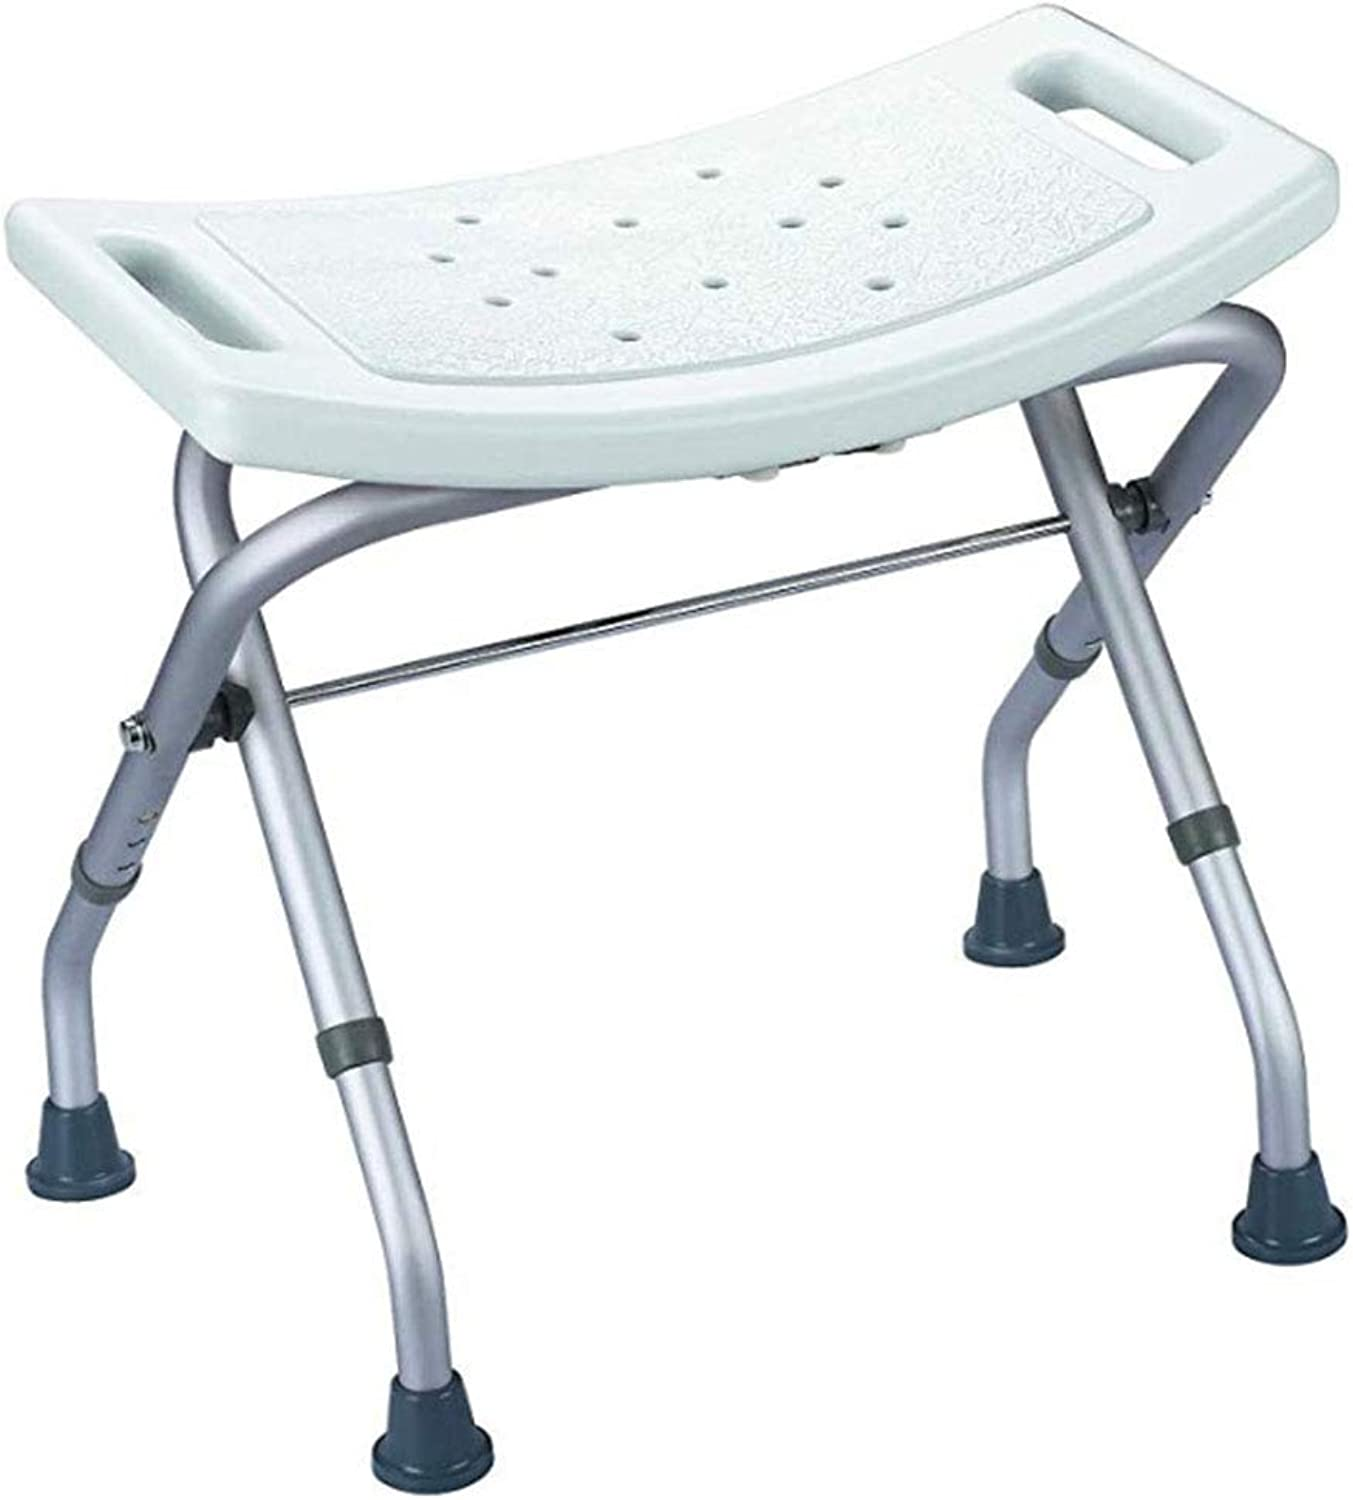 MTBHW Non-slip Bathtub & Shower Seat, Folding And Adjustable In Height, White